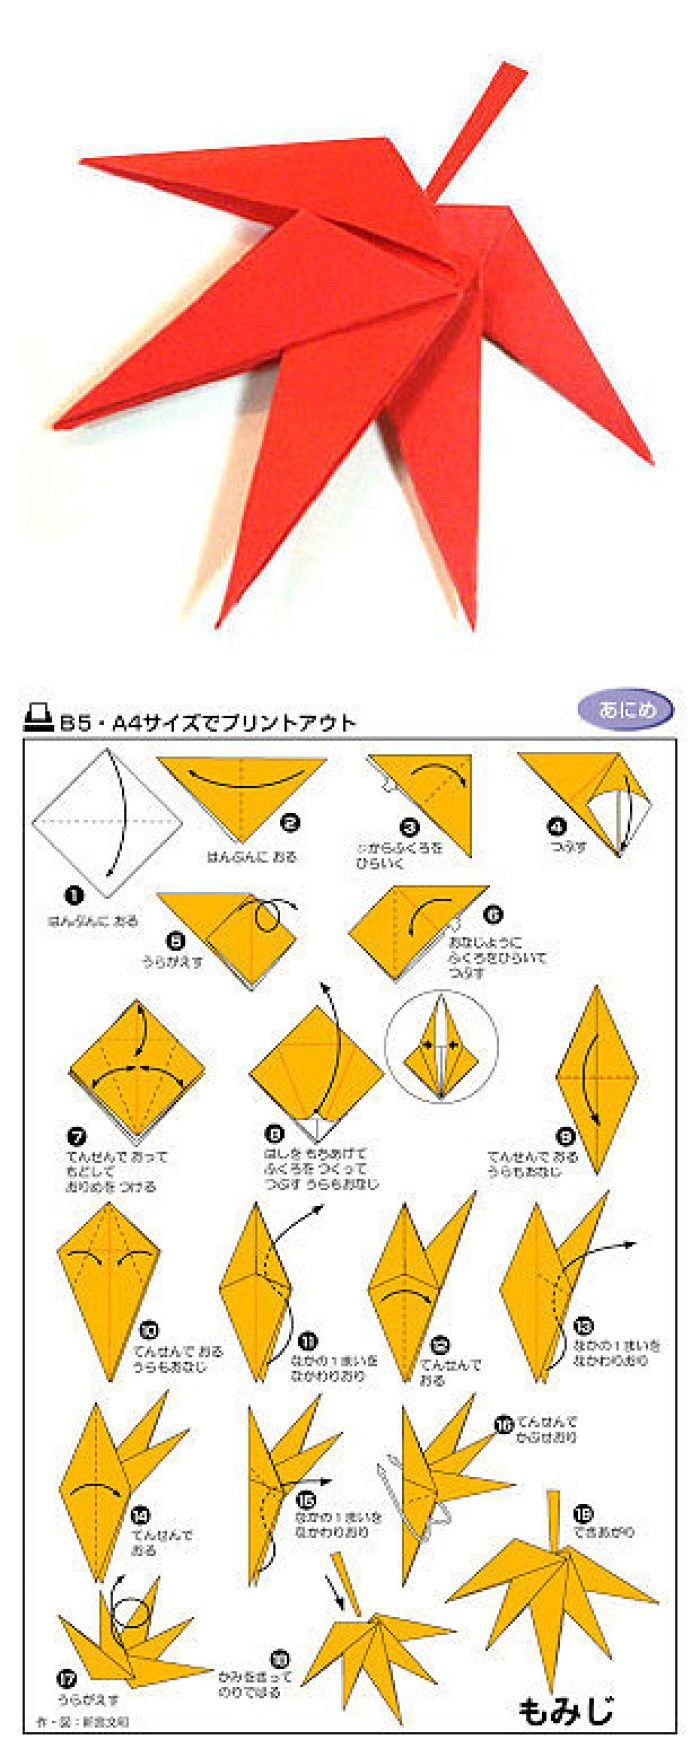 Origami Christmas Star Tavin39s 31 Best Flower Images On Pinterest Diy